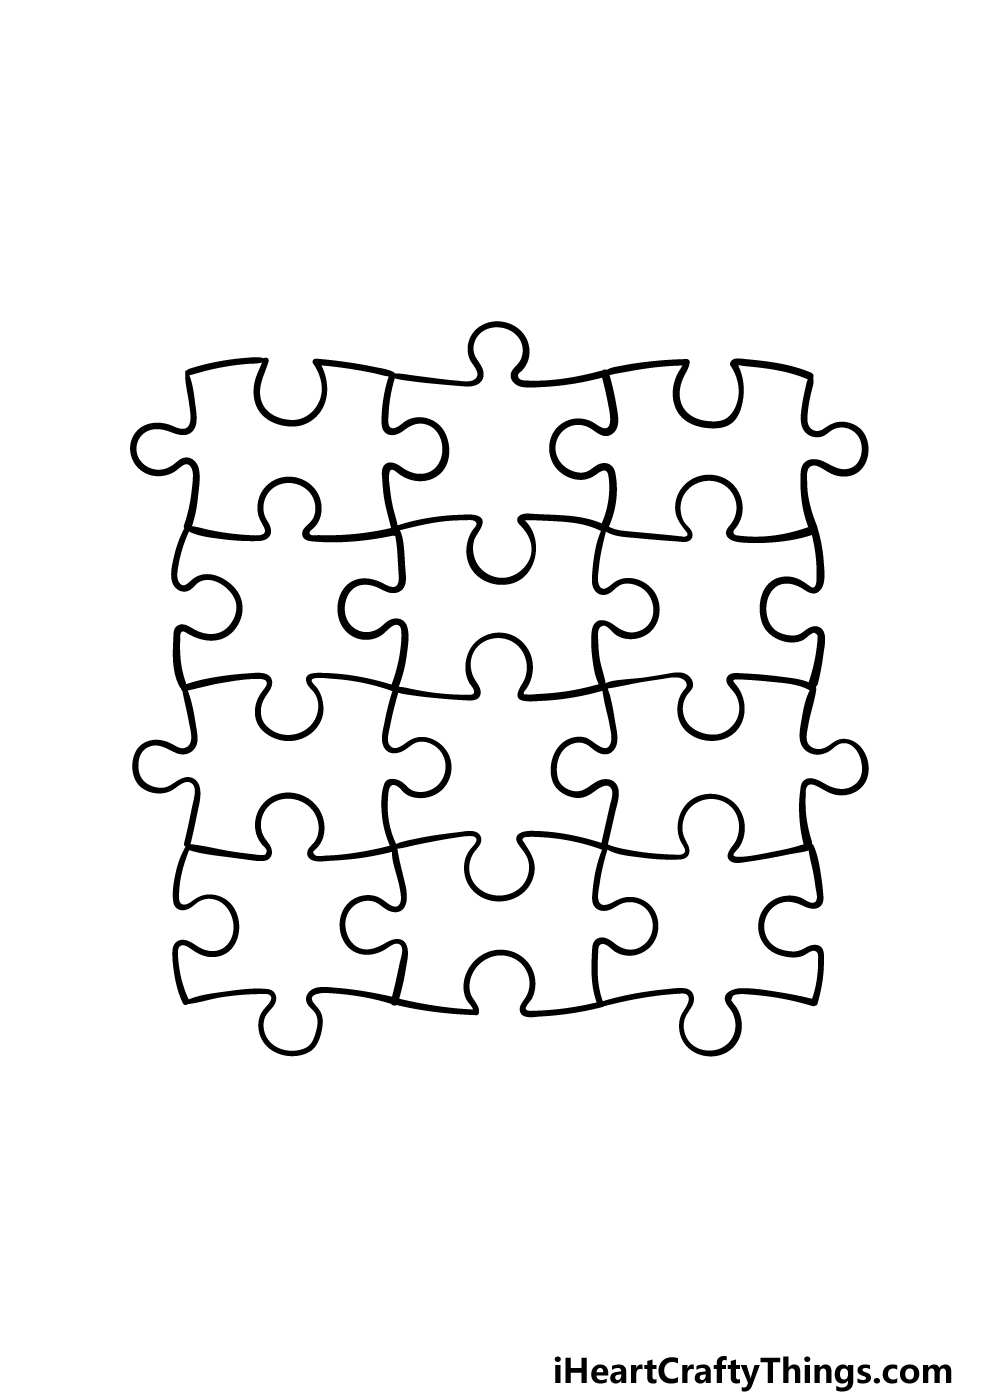 how to draw Puzzle Pieces step 5